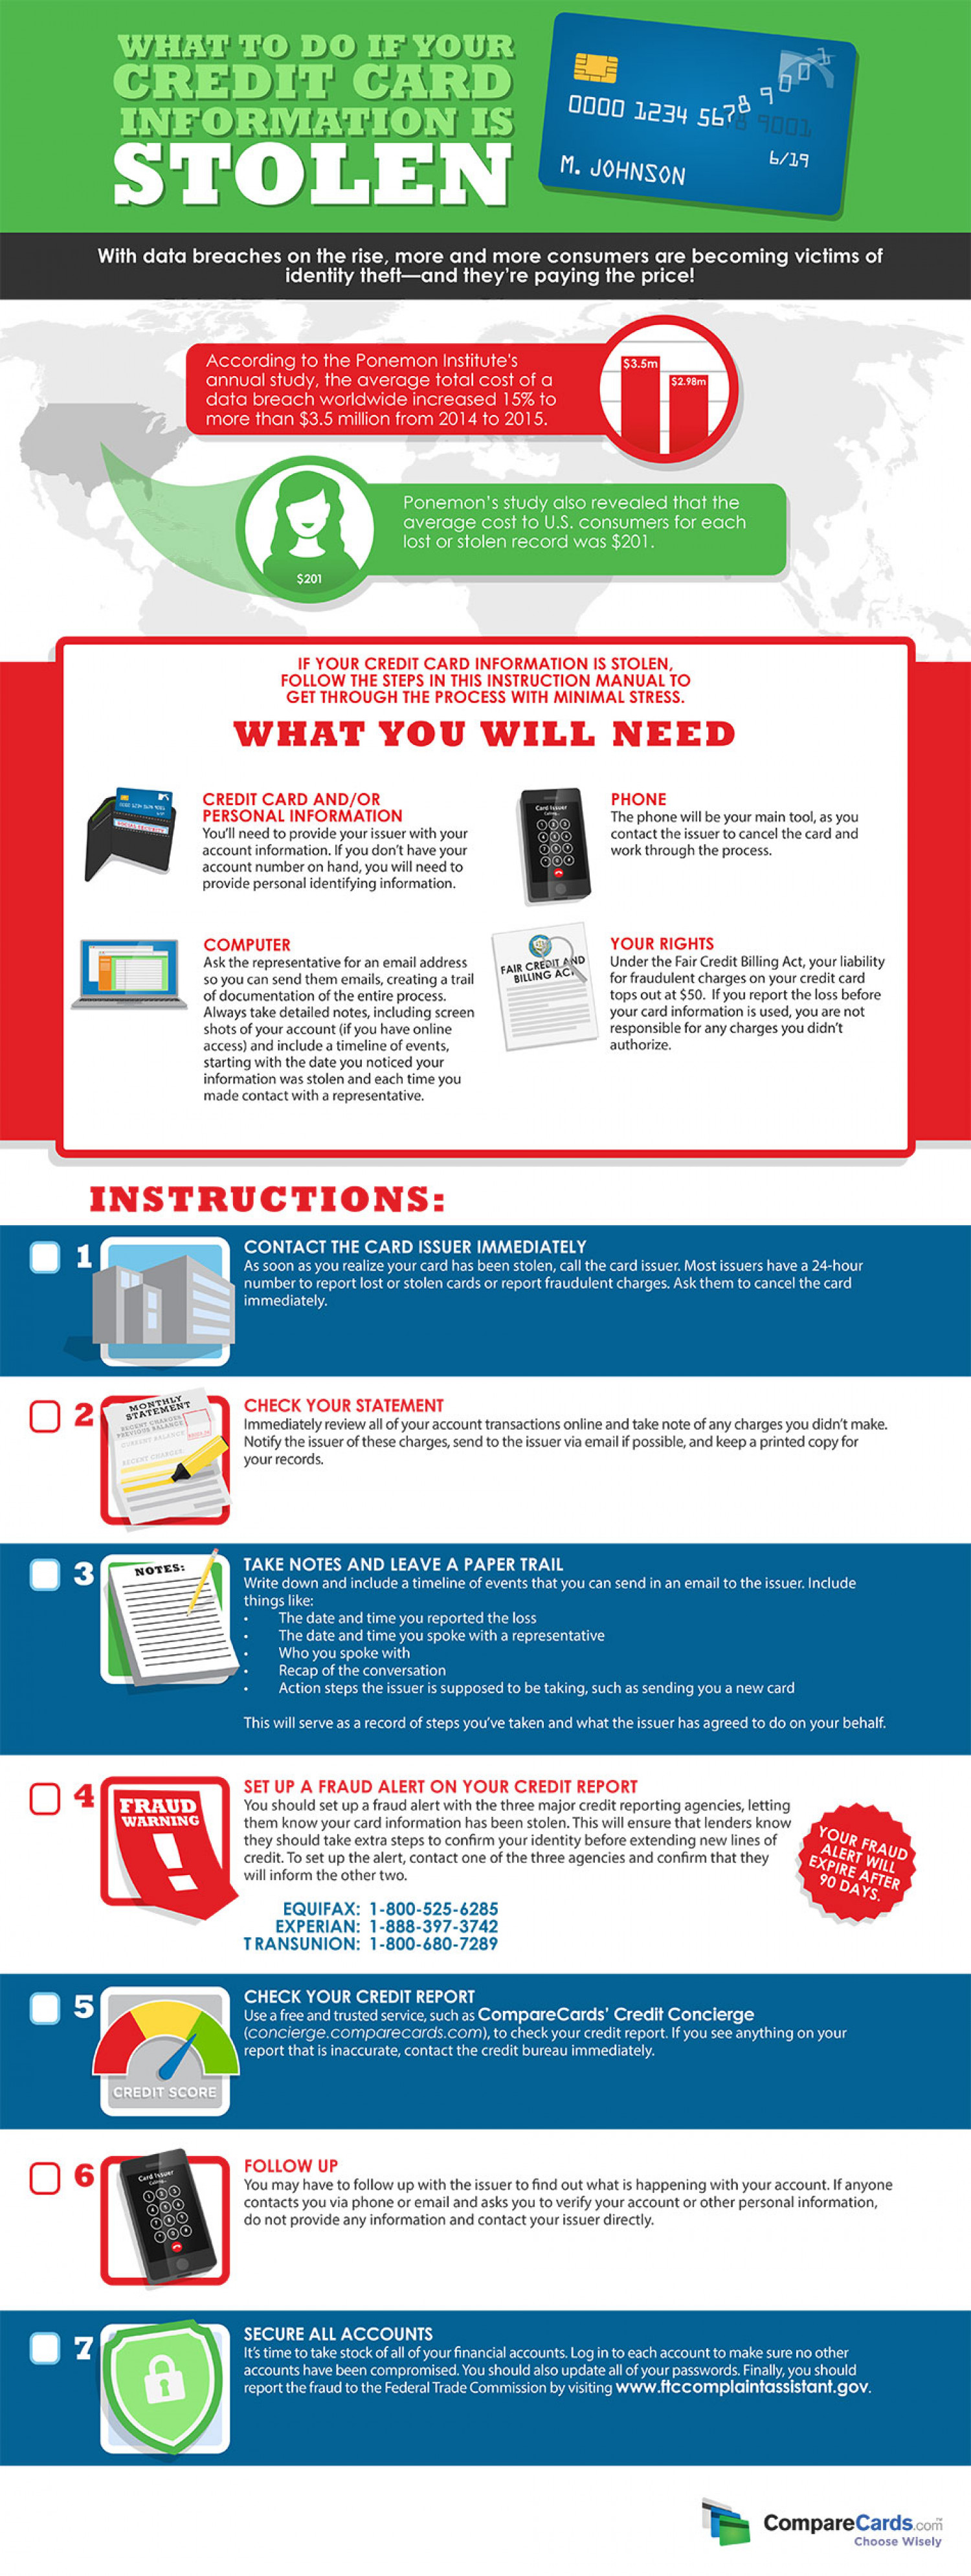 What to Do if Your Credit Card is Stolen Infographic